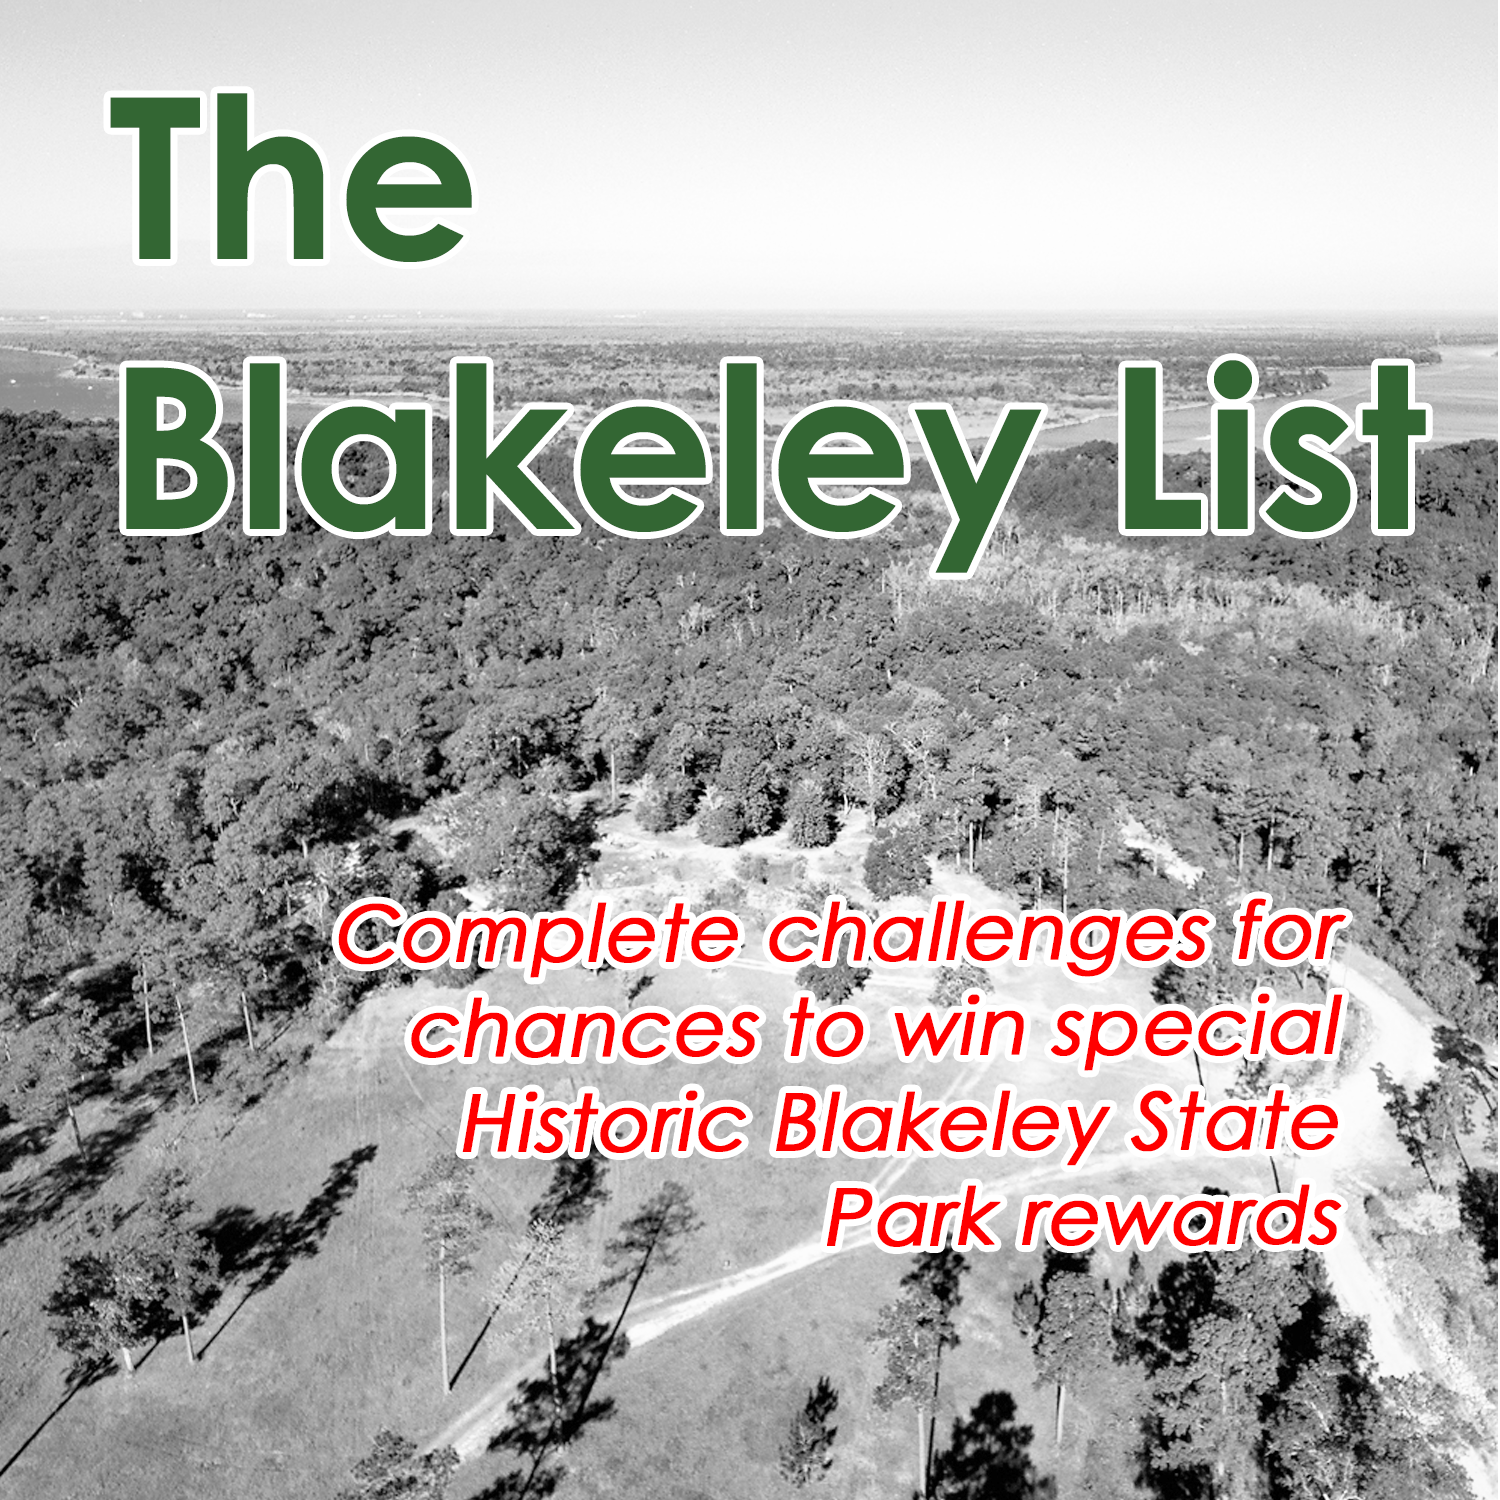 link to Blakeley page to win the prizes donated by Historic Blakeley State Park